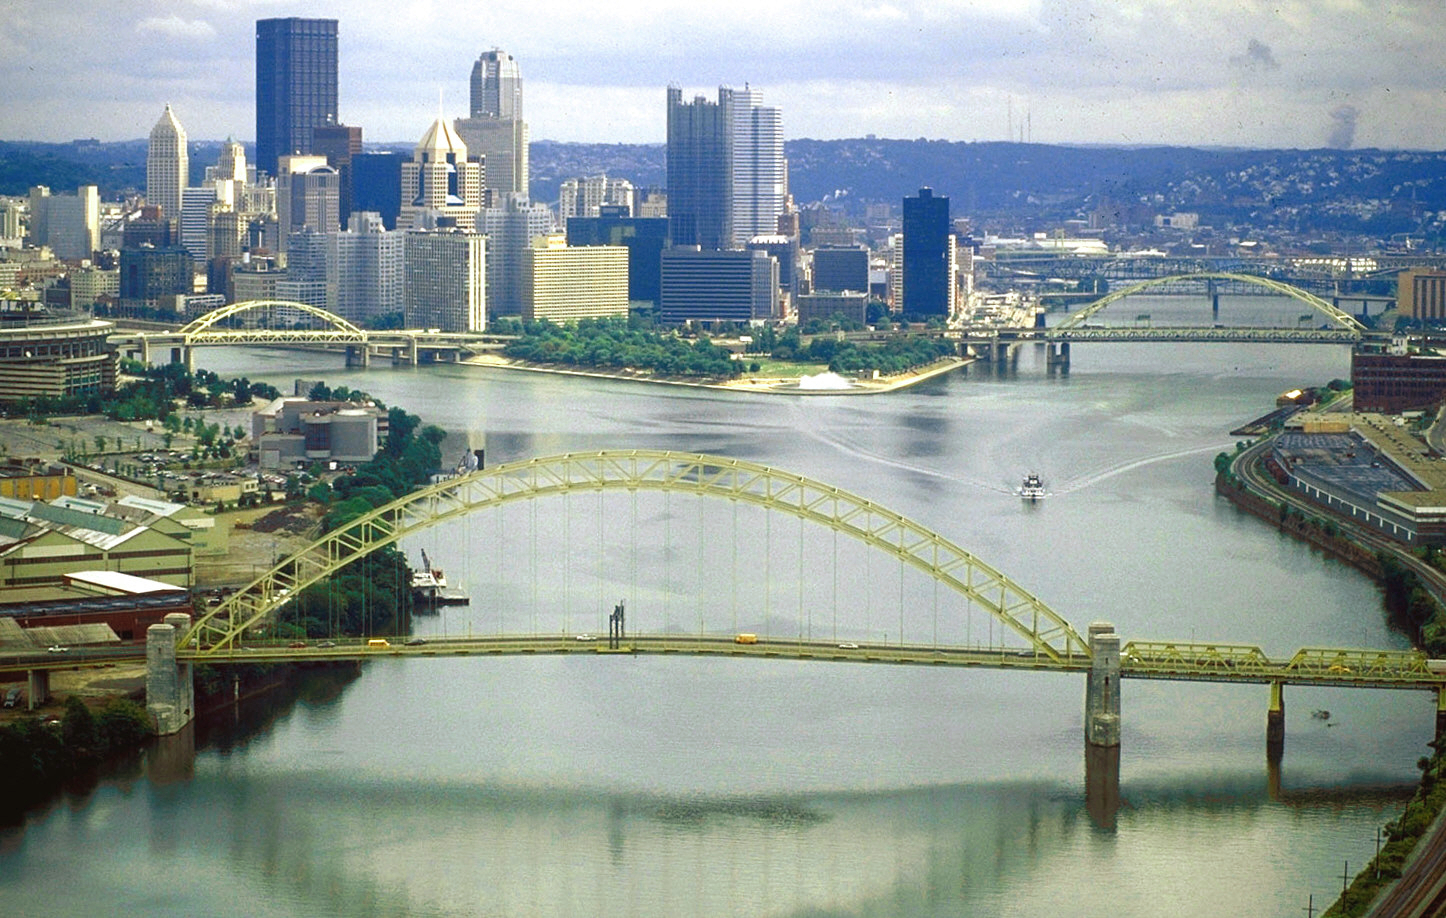 Photograph of the city of Pittsburgh